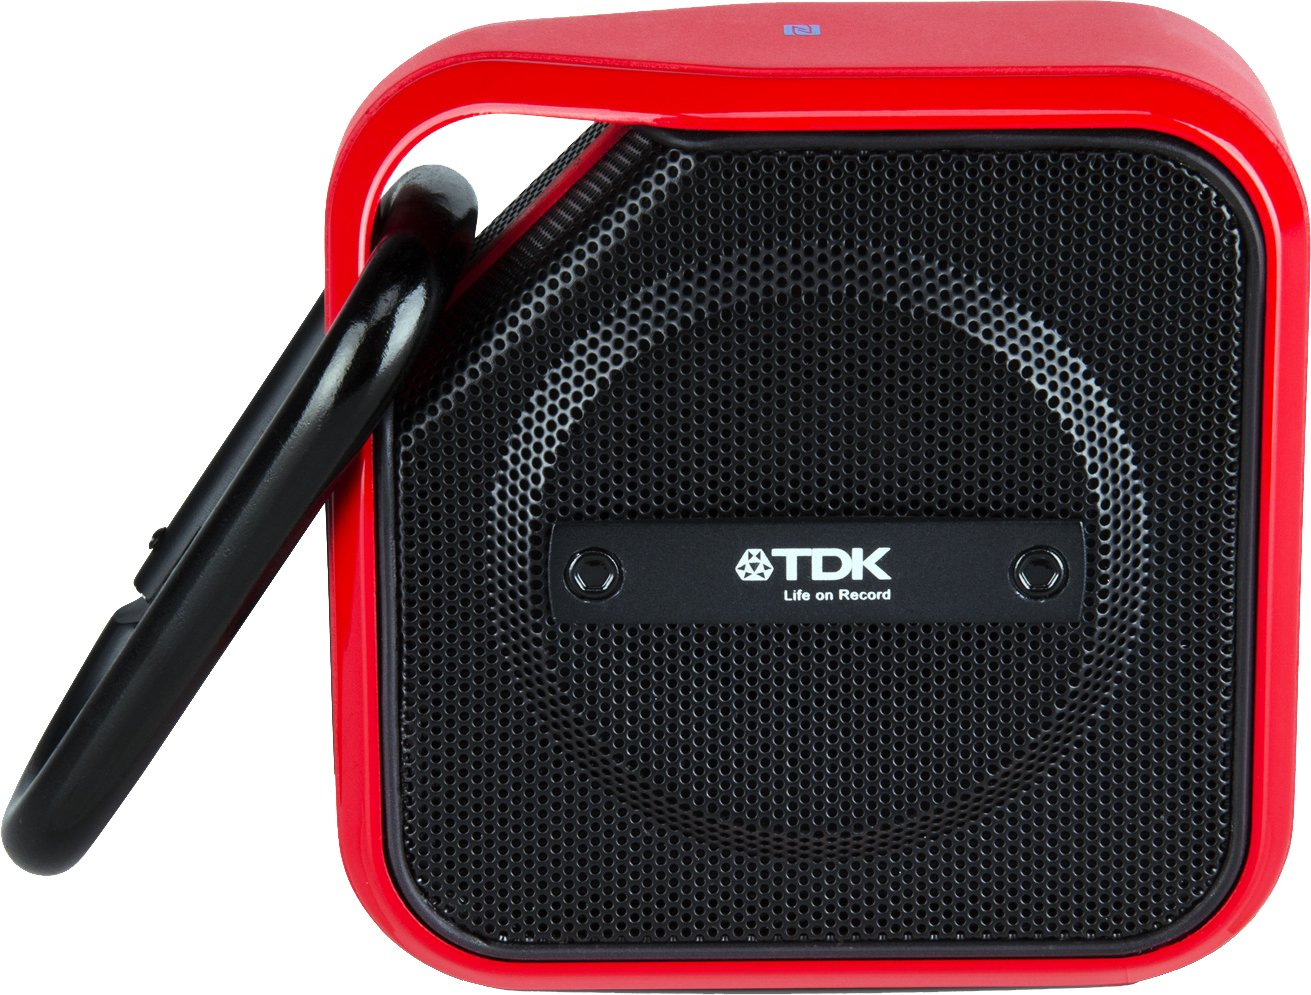 TDK Life On Record Micro Wireless Bluetooth Speaker tdk 6kv10p 6kv10j